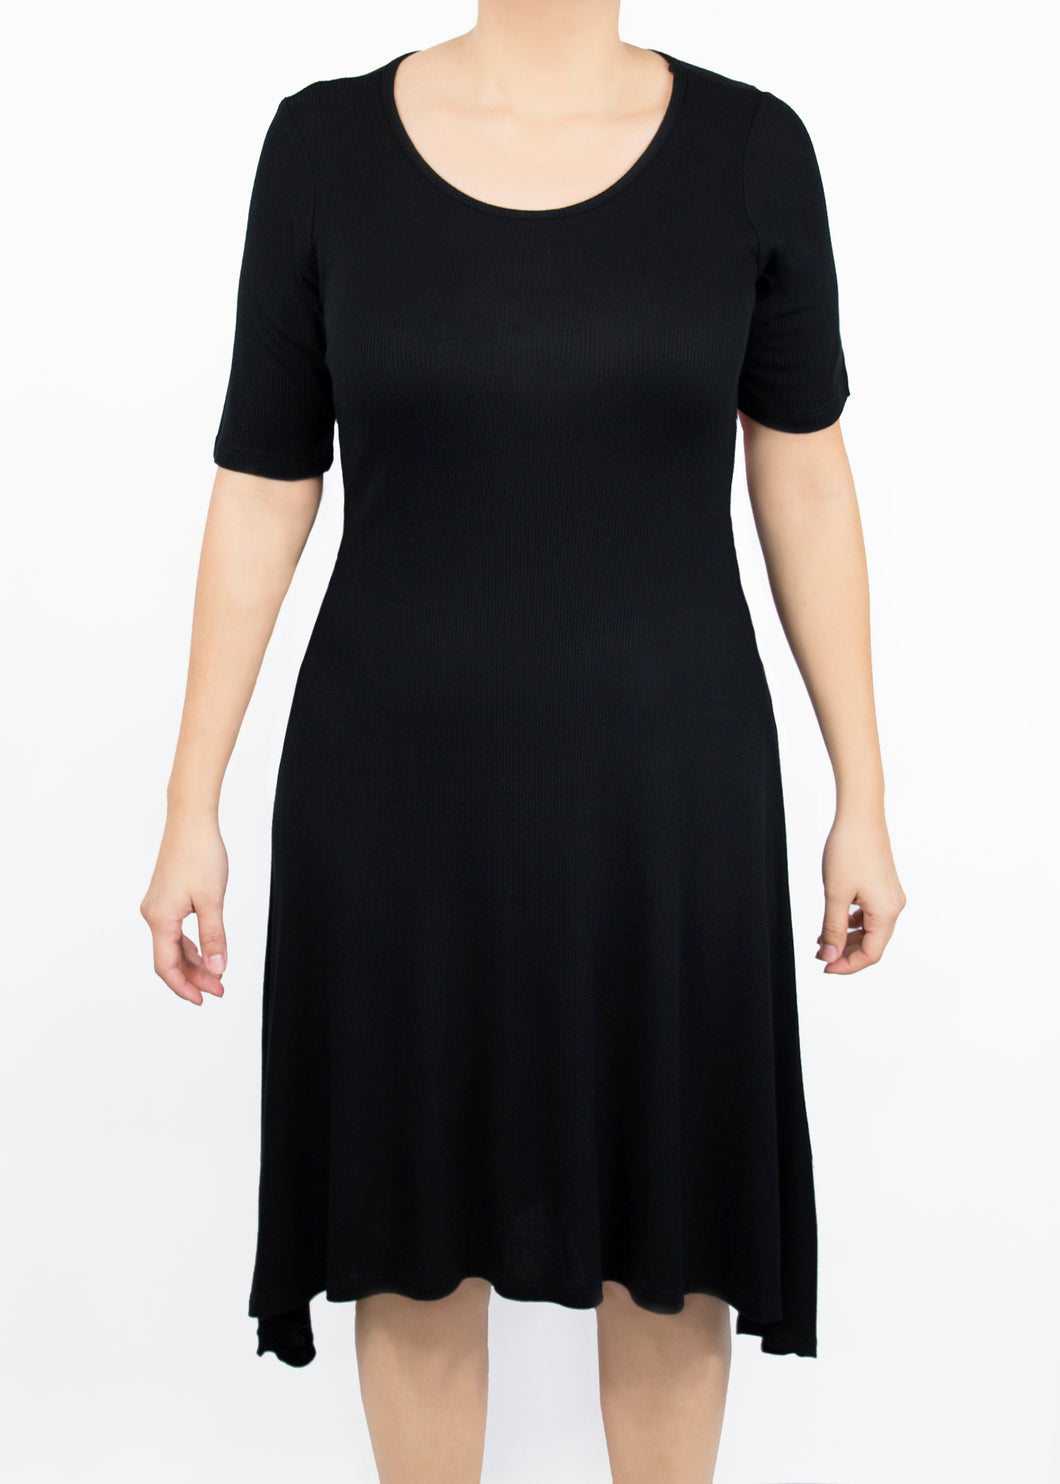 Poppy Dress - Small - Black